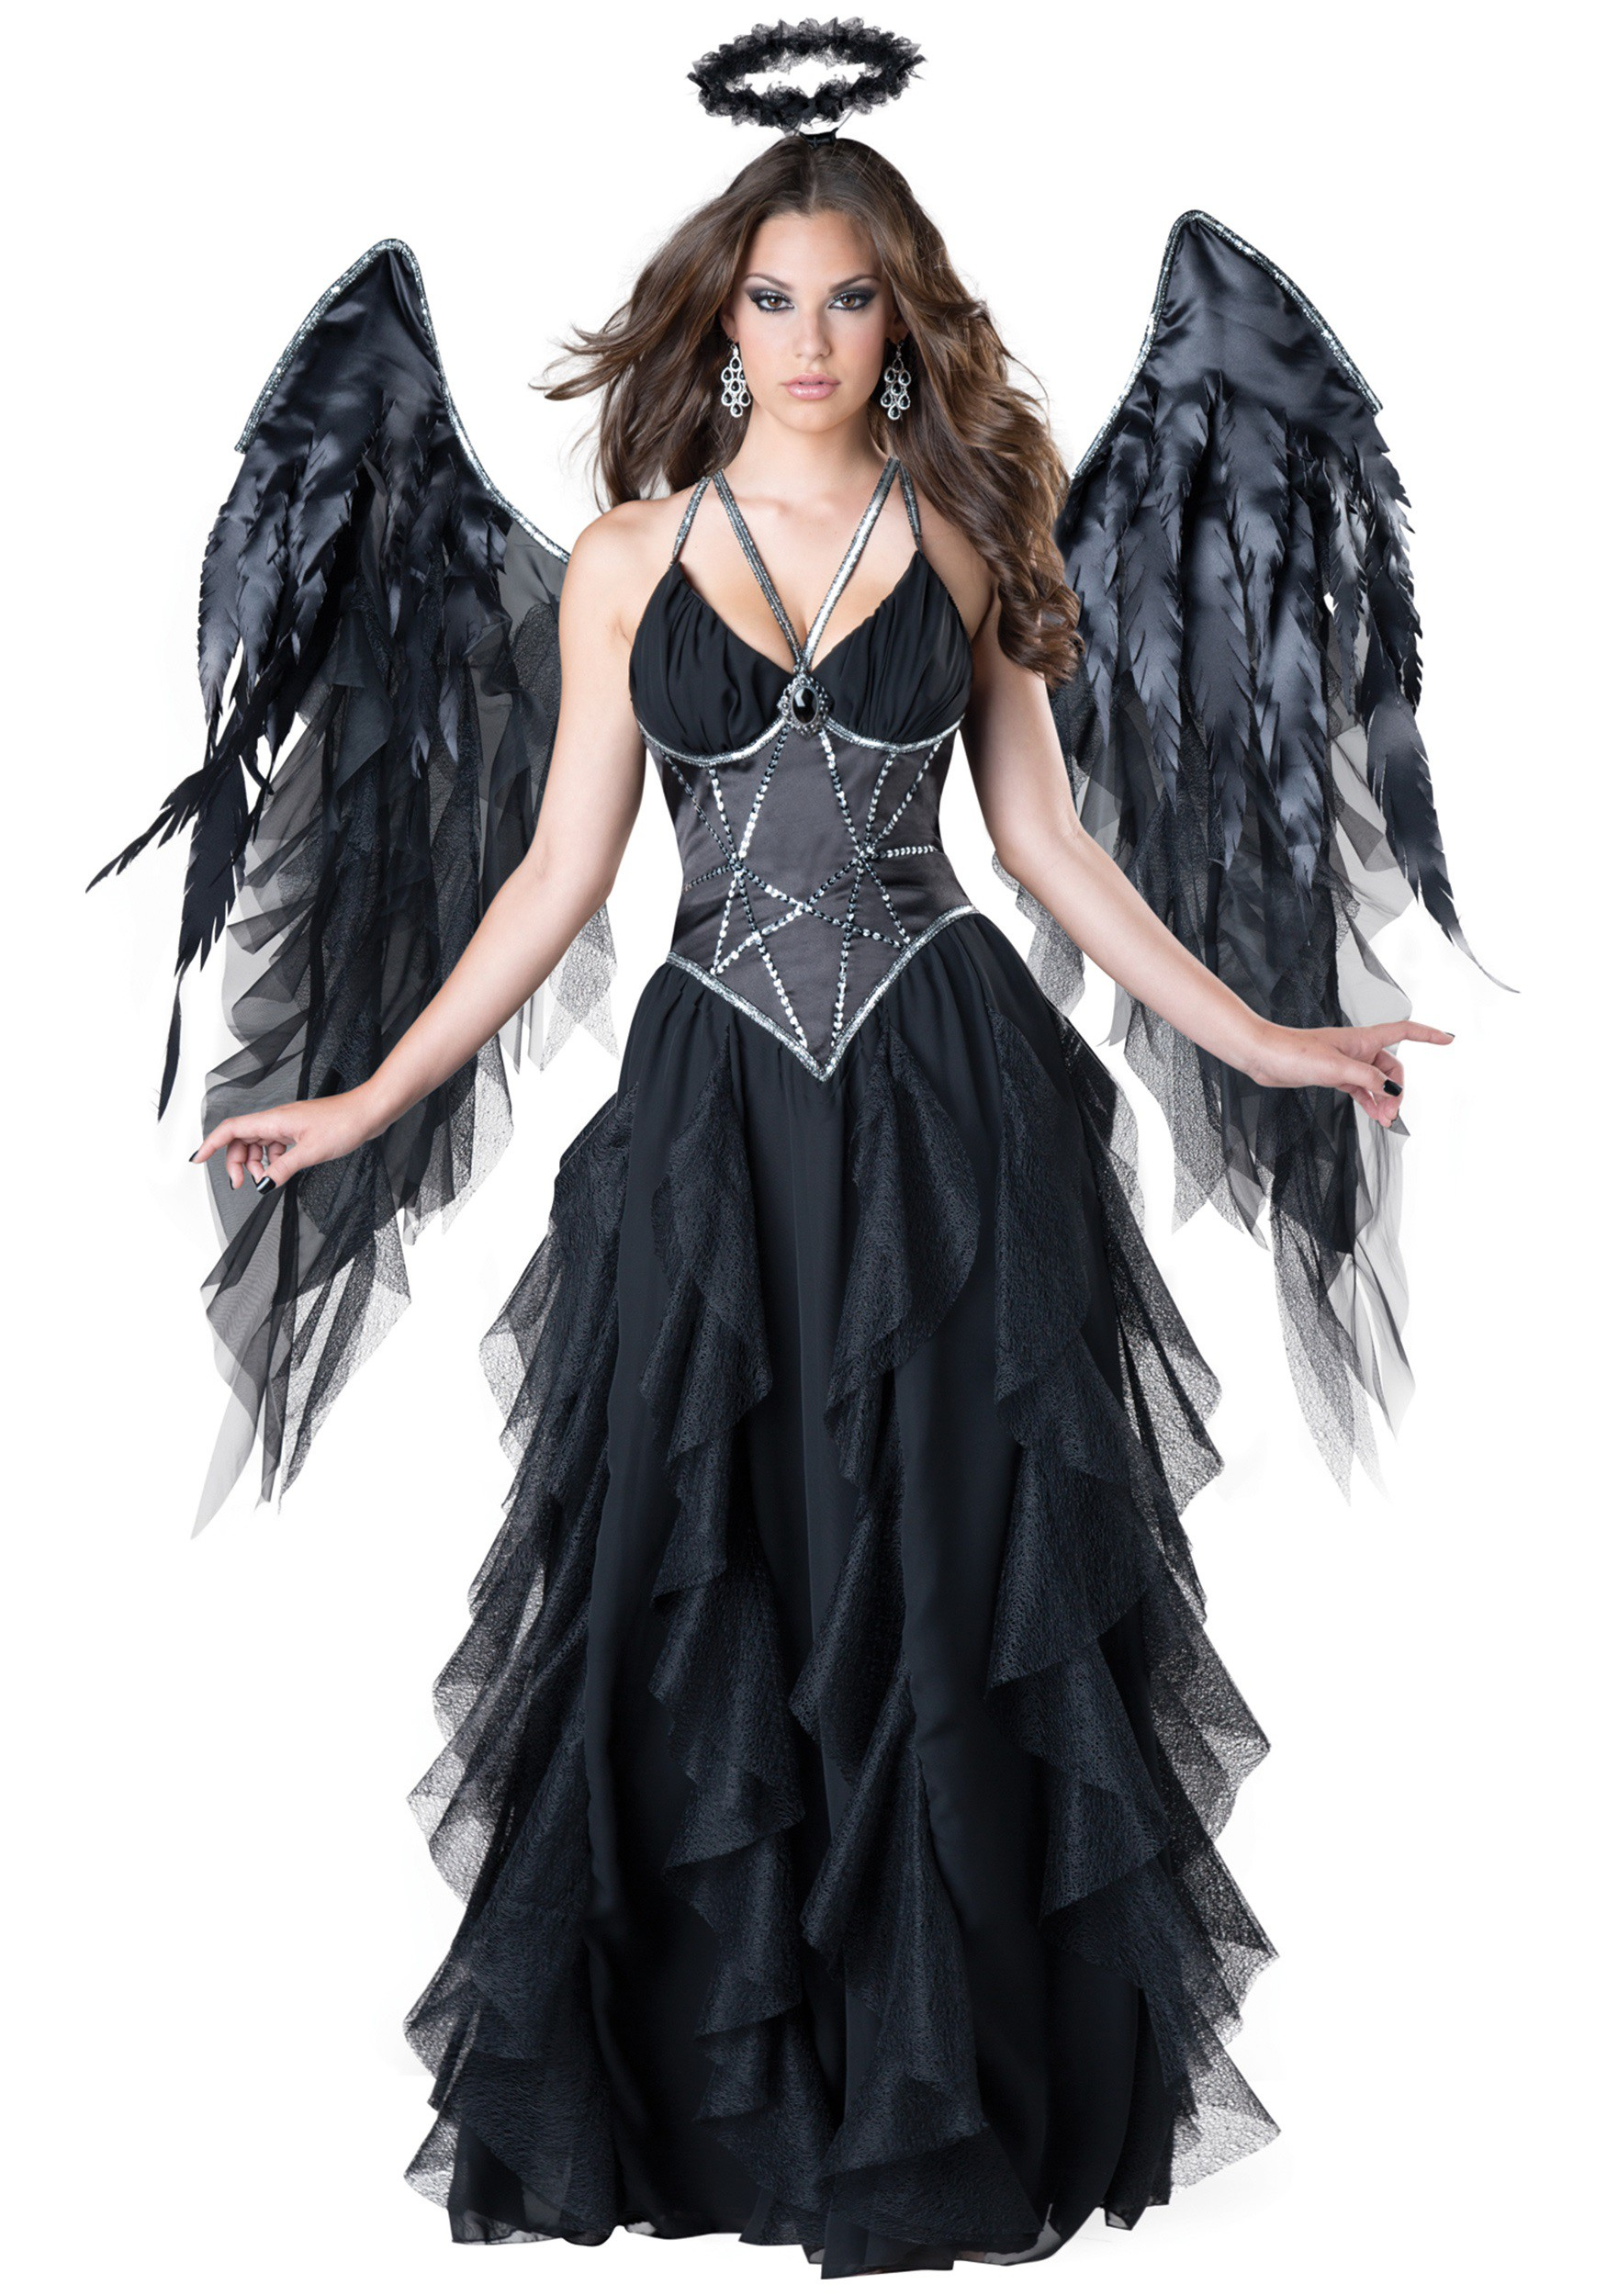 Women 39 s dark angel costume - Deguisement horreur femme ...